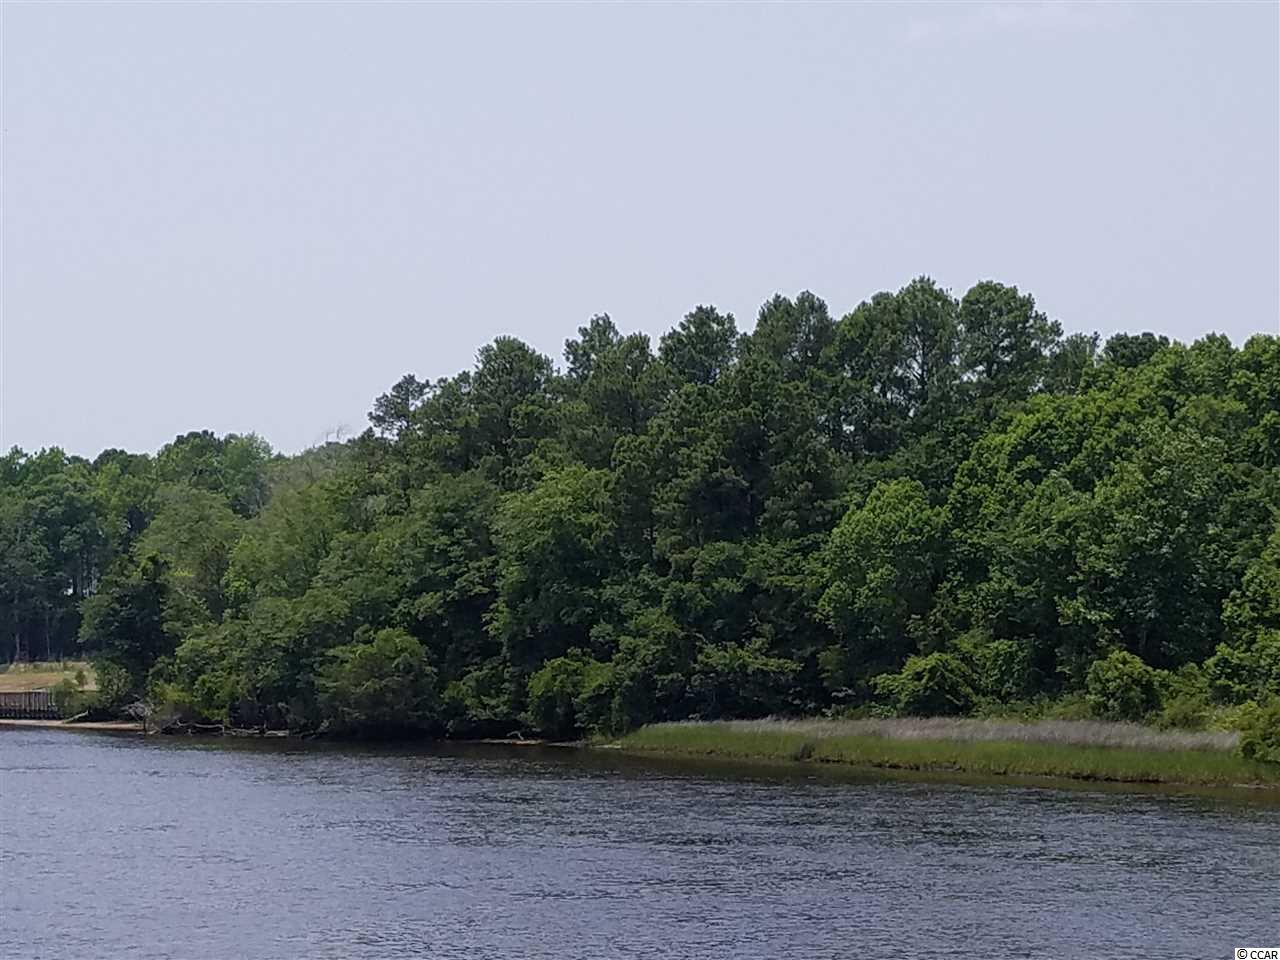 AMAZING OPPORTUNITY TO 140 FEET of DIRECT INTRACOASTAL WATERWAY FRONT! At just under 1 acre, this wide, highly desirable built site features: SECLUDED LOCATION, MATURE TREES, ABILITY TO BUILD A DOCK, NO HOA FEES AND NO TIMEFRAME TO BUILD! Perfect location in Little River, Near North Myrtle Beach Main Street, Little River Waterfront, golf, shopping, restaurants and THE BEACH! Claim your paradise today!